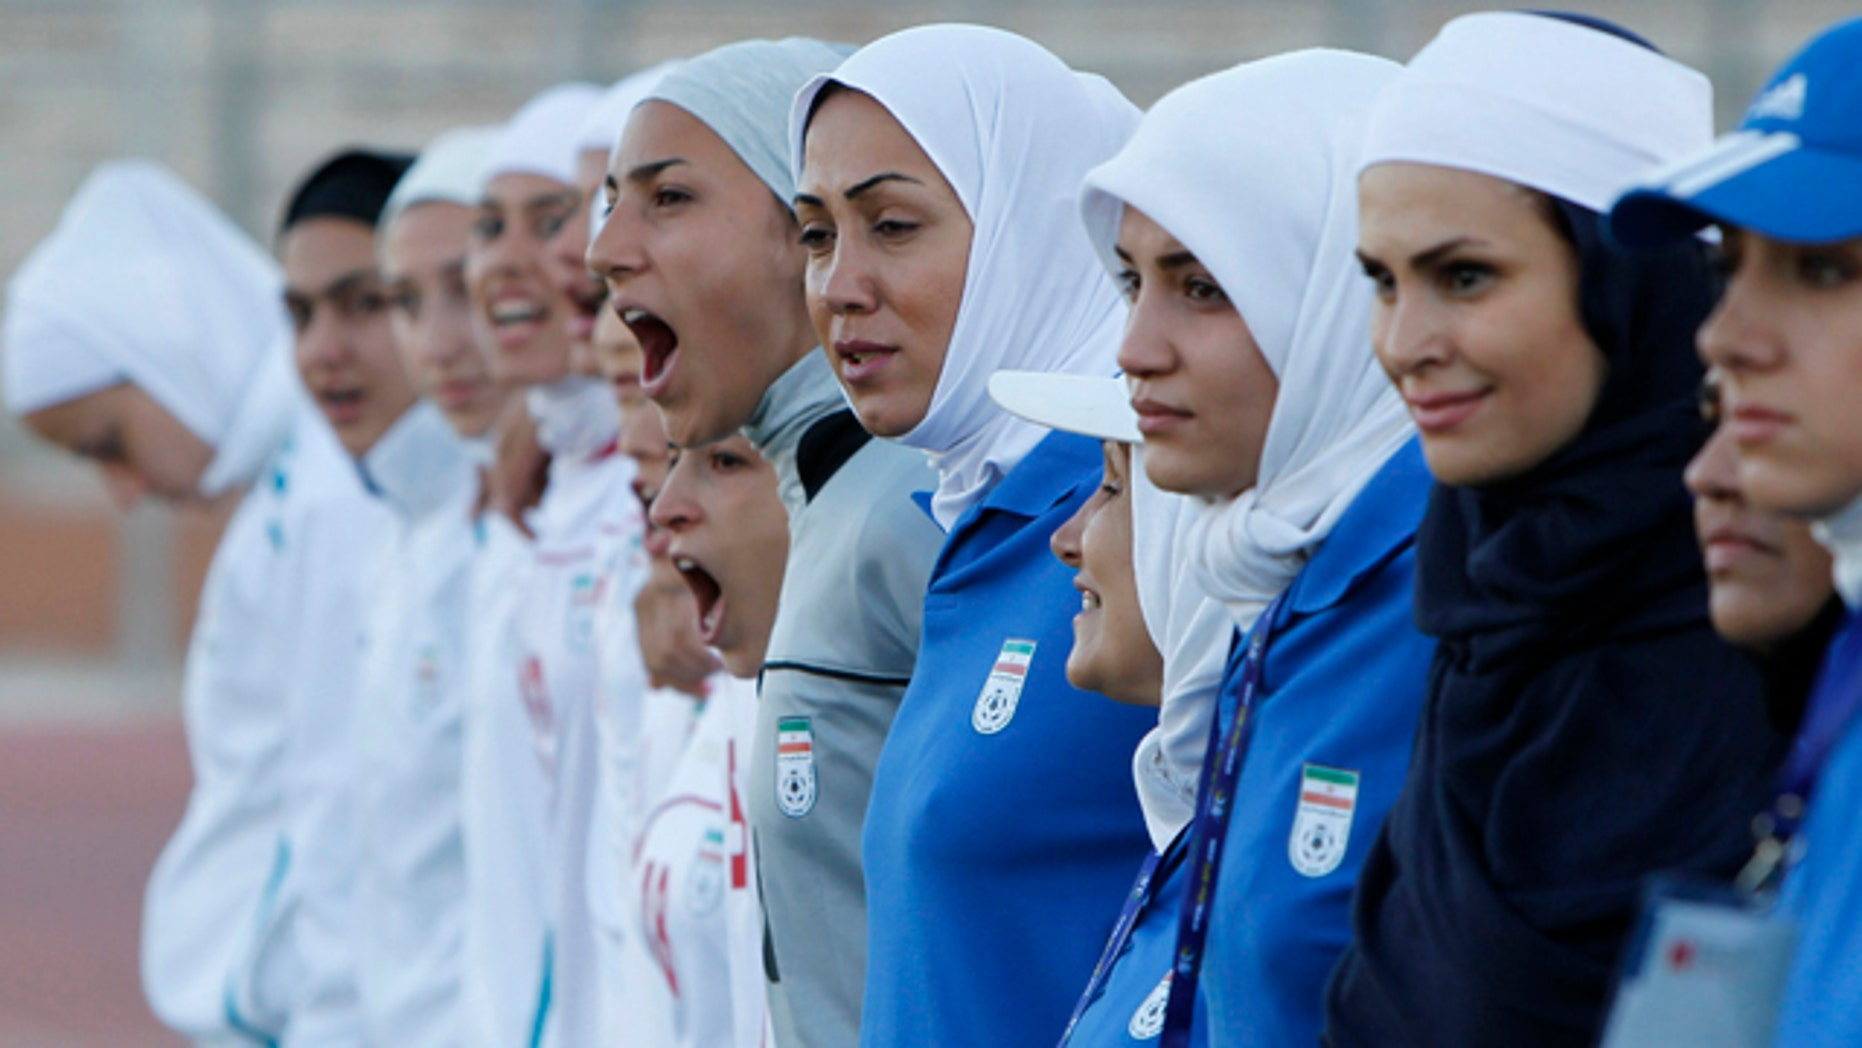 The Iranian women's national soccer team lines up before its qualifying match against Jordan for the 2012 London Olympic Games in Amman, June 3, 2011. The Iranian team was banned from the match on Friday in the second round of qualifiers in protest against guidelines on its headscarves.